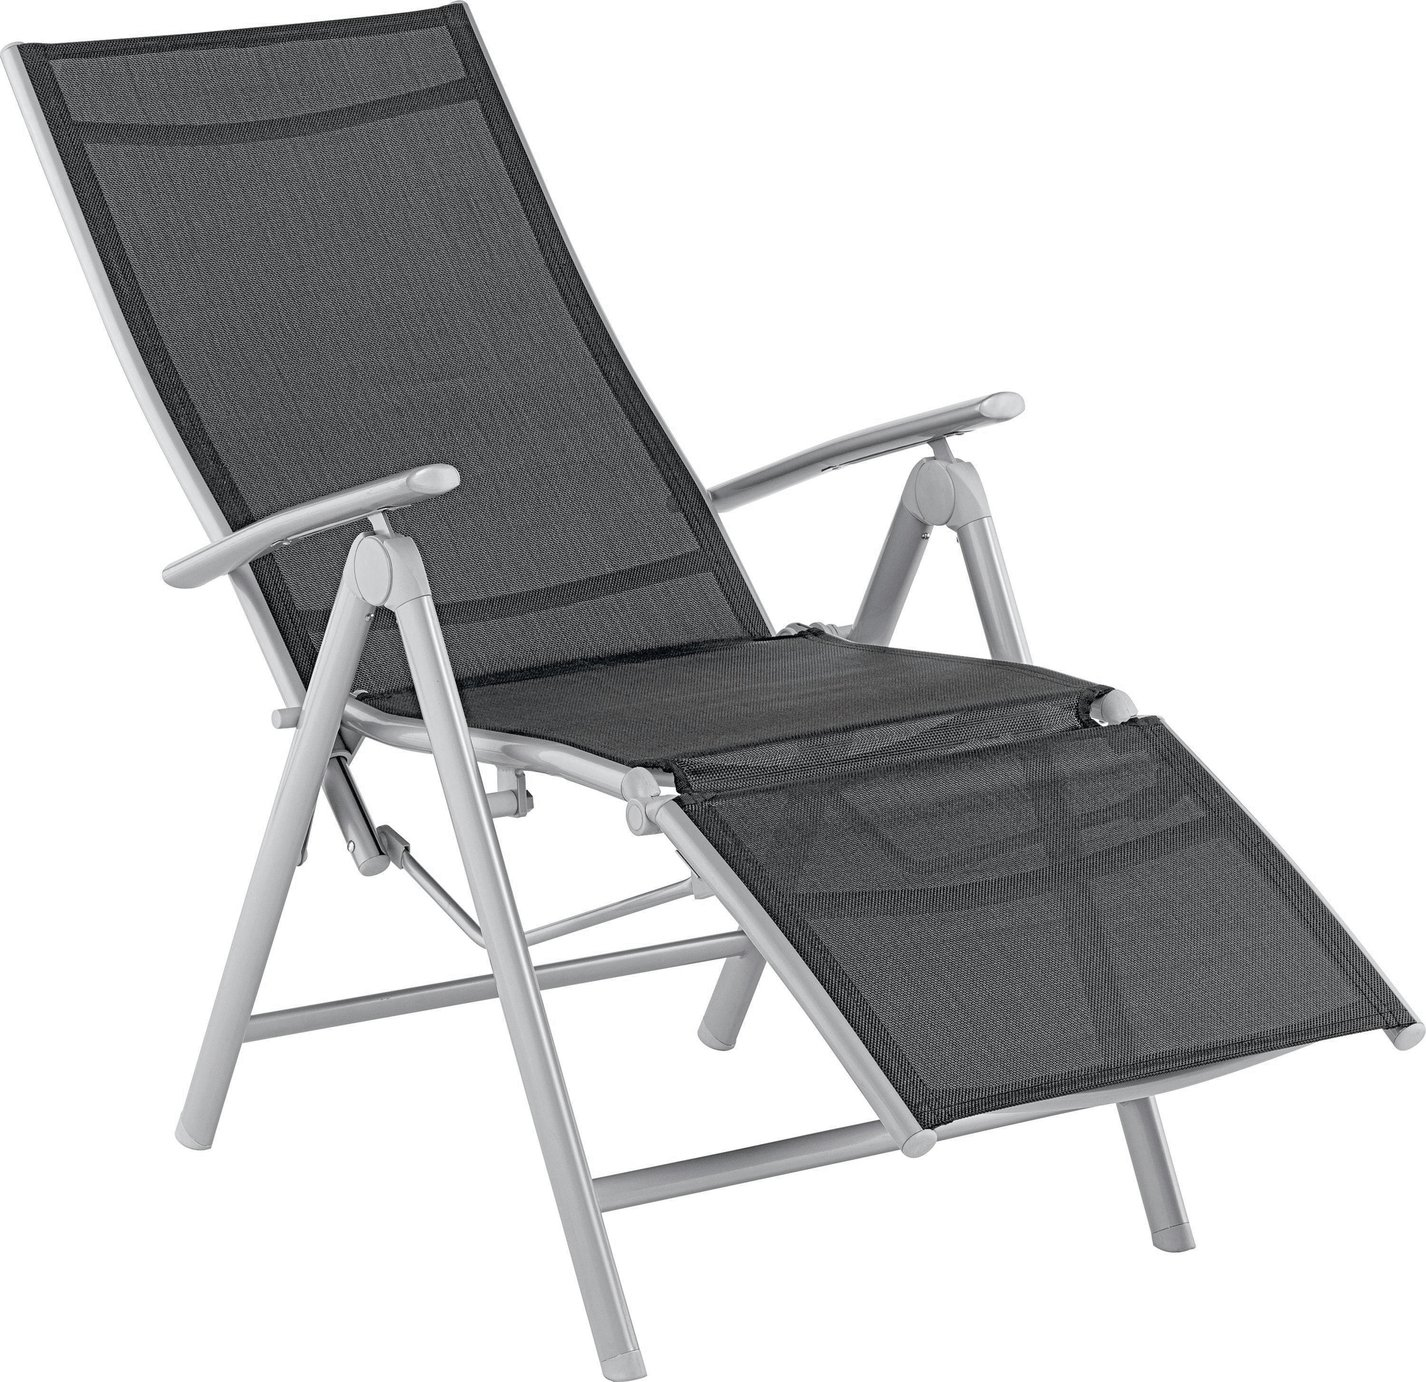 Malibu Recliner Chair - Black651/1438  sc 1 st  Argos & Buy Malibu Recliner Chair - Black at Argos.co.uk - Your Online ... islam-shia.org